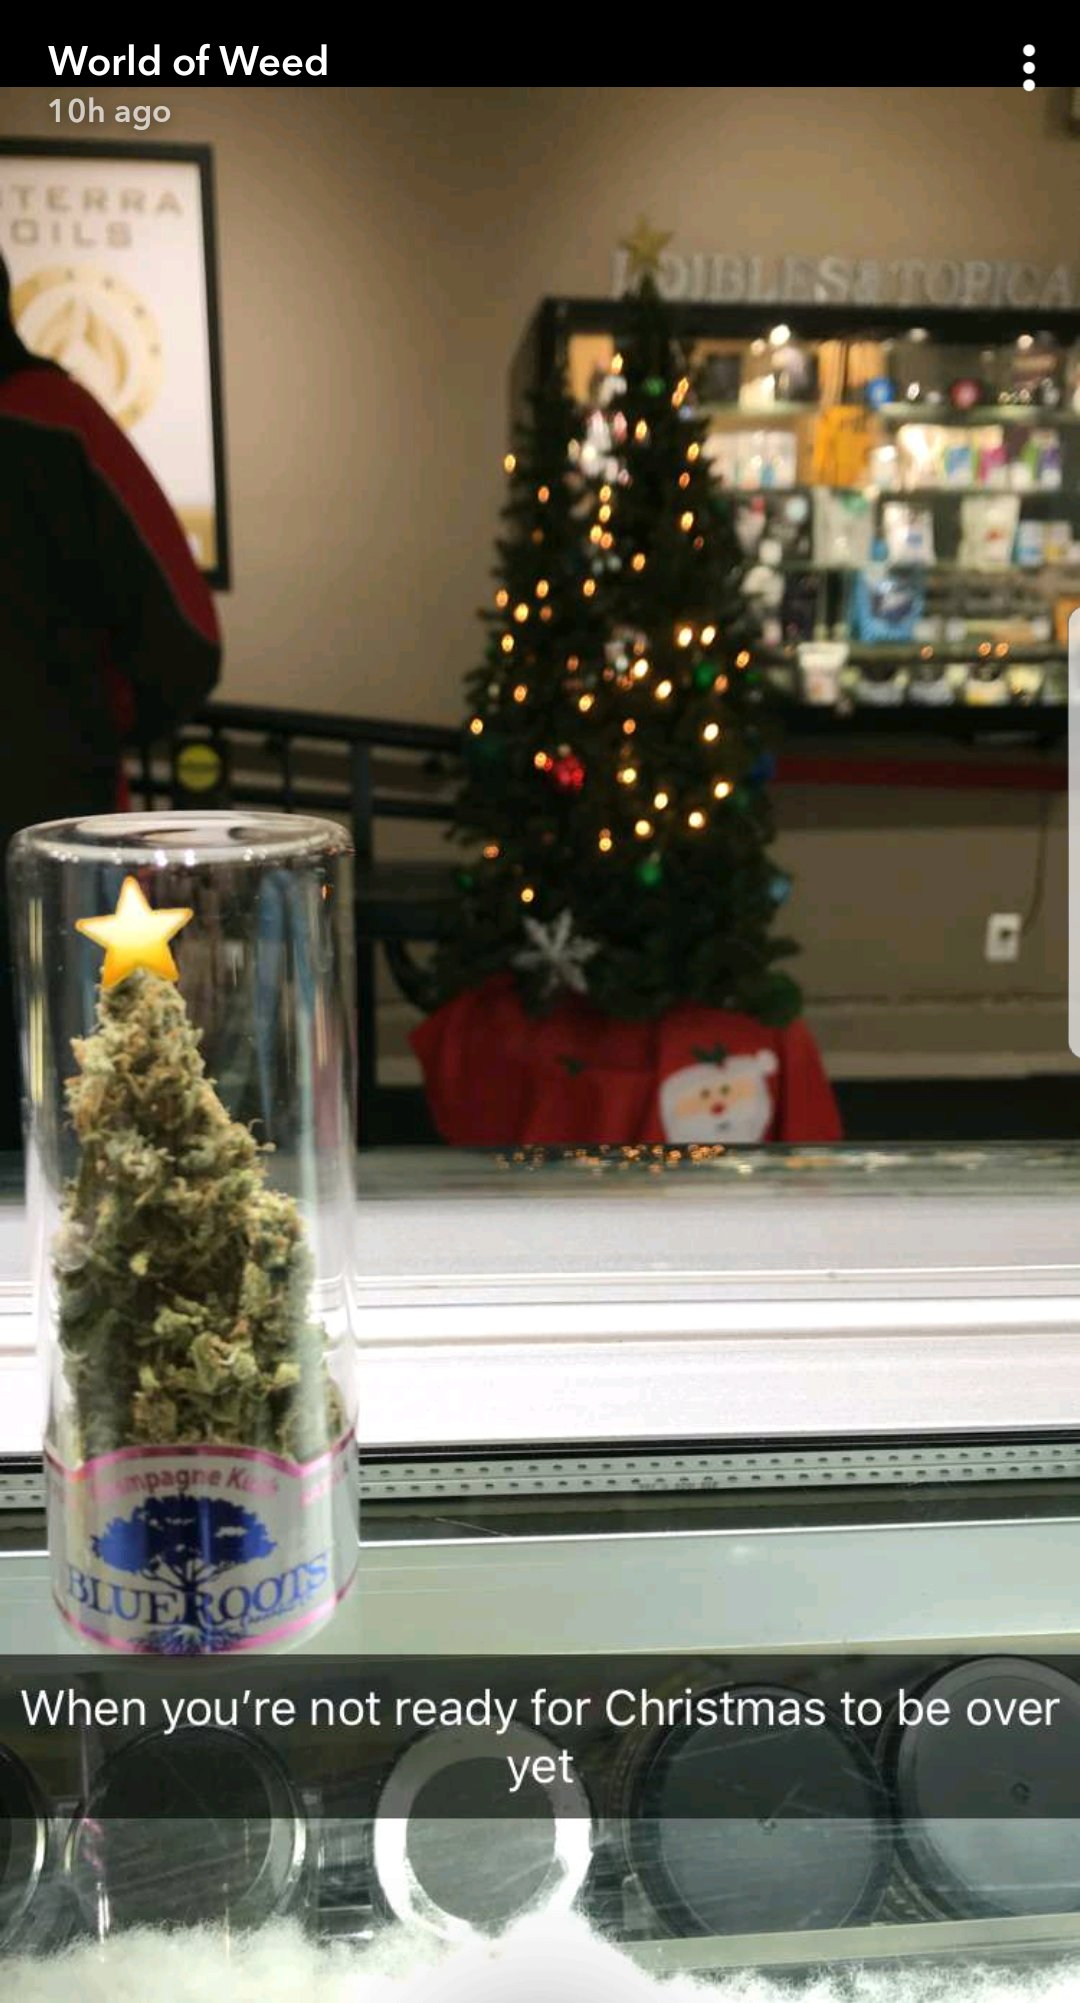 World of Weed in Tacoma shows how festive they are on Snapchat